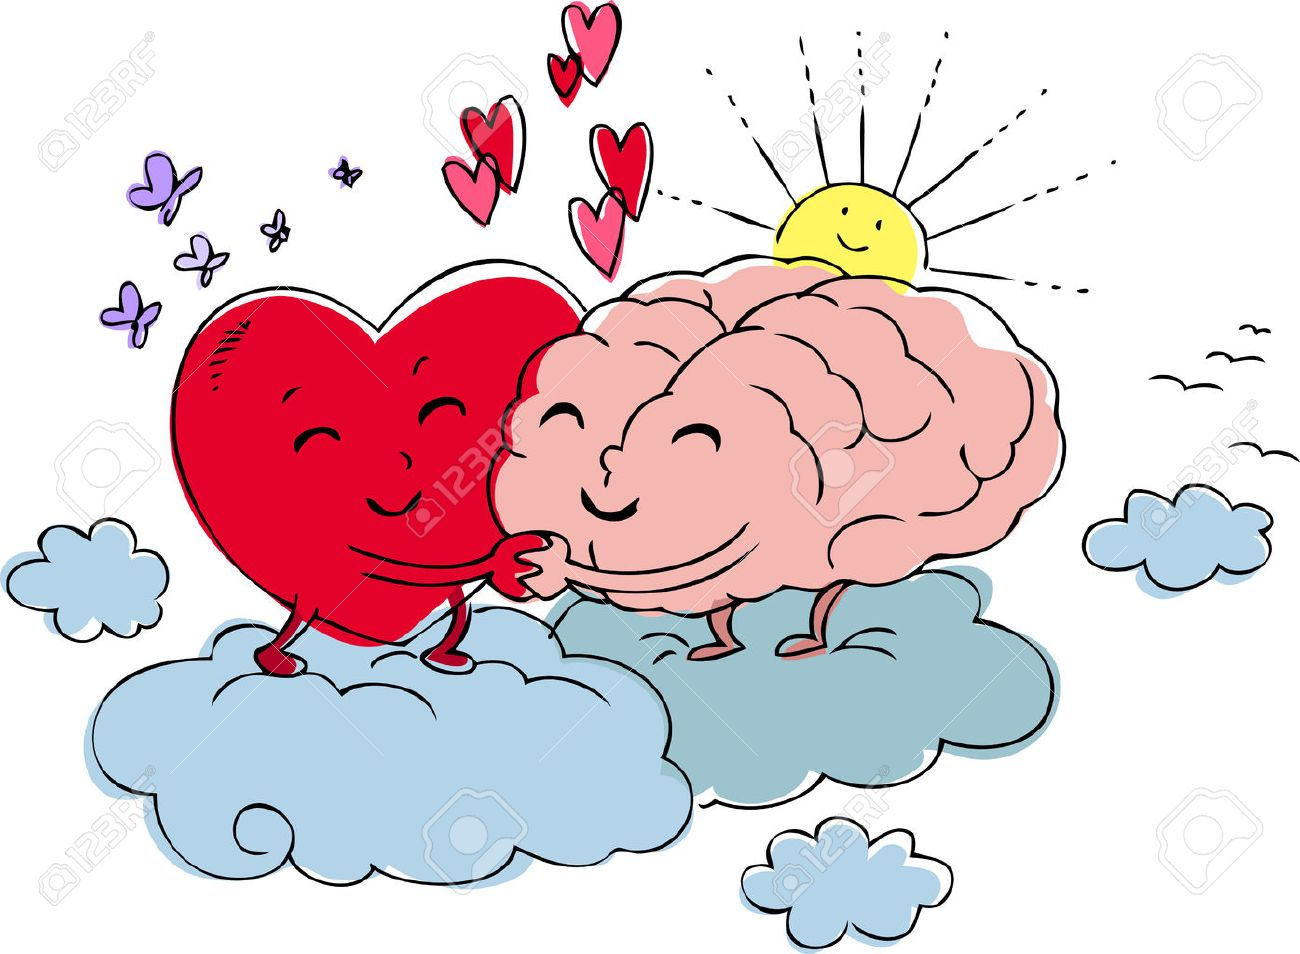 Heart and brain embrace each other with love Stock Vector - 24231328